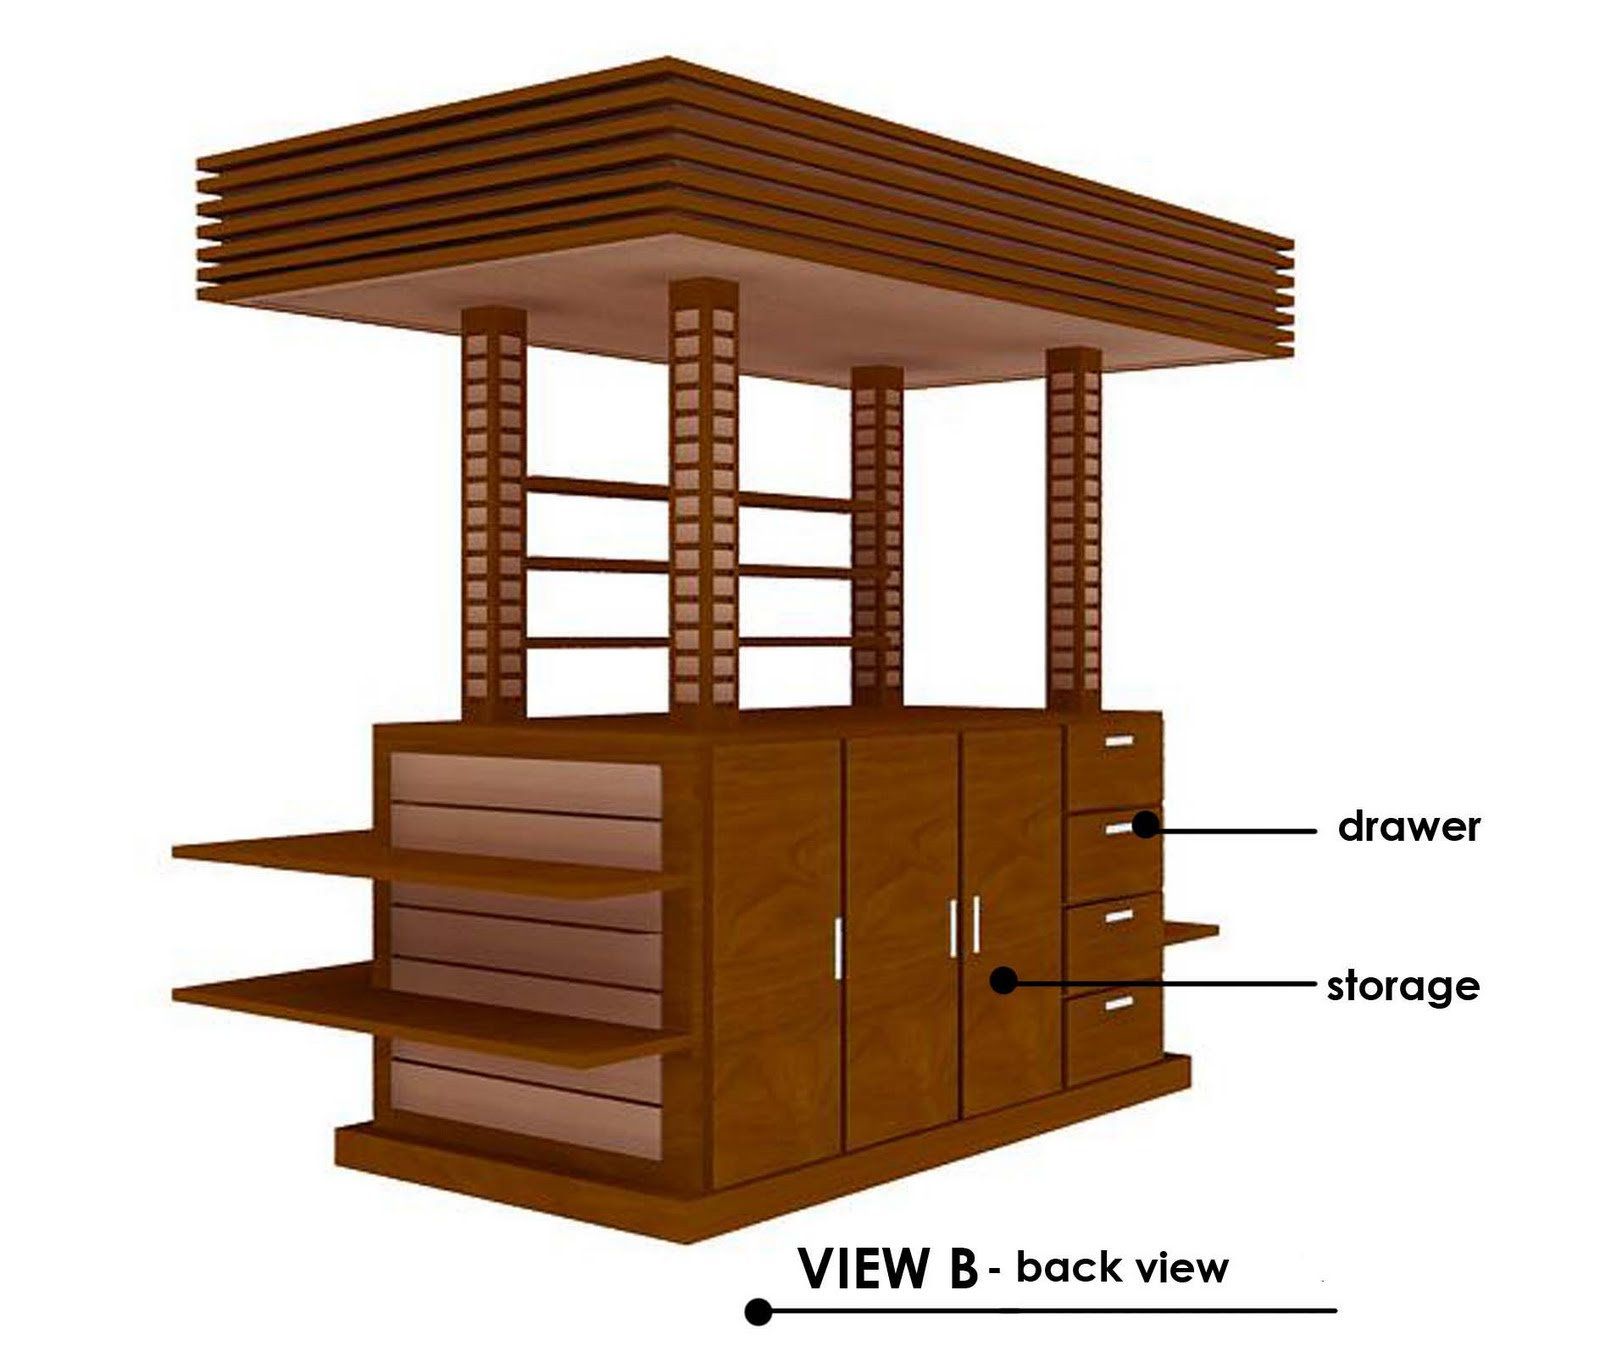 Rekadecor interior portfolio kiosk design for Architecture kiosk design